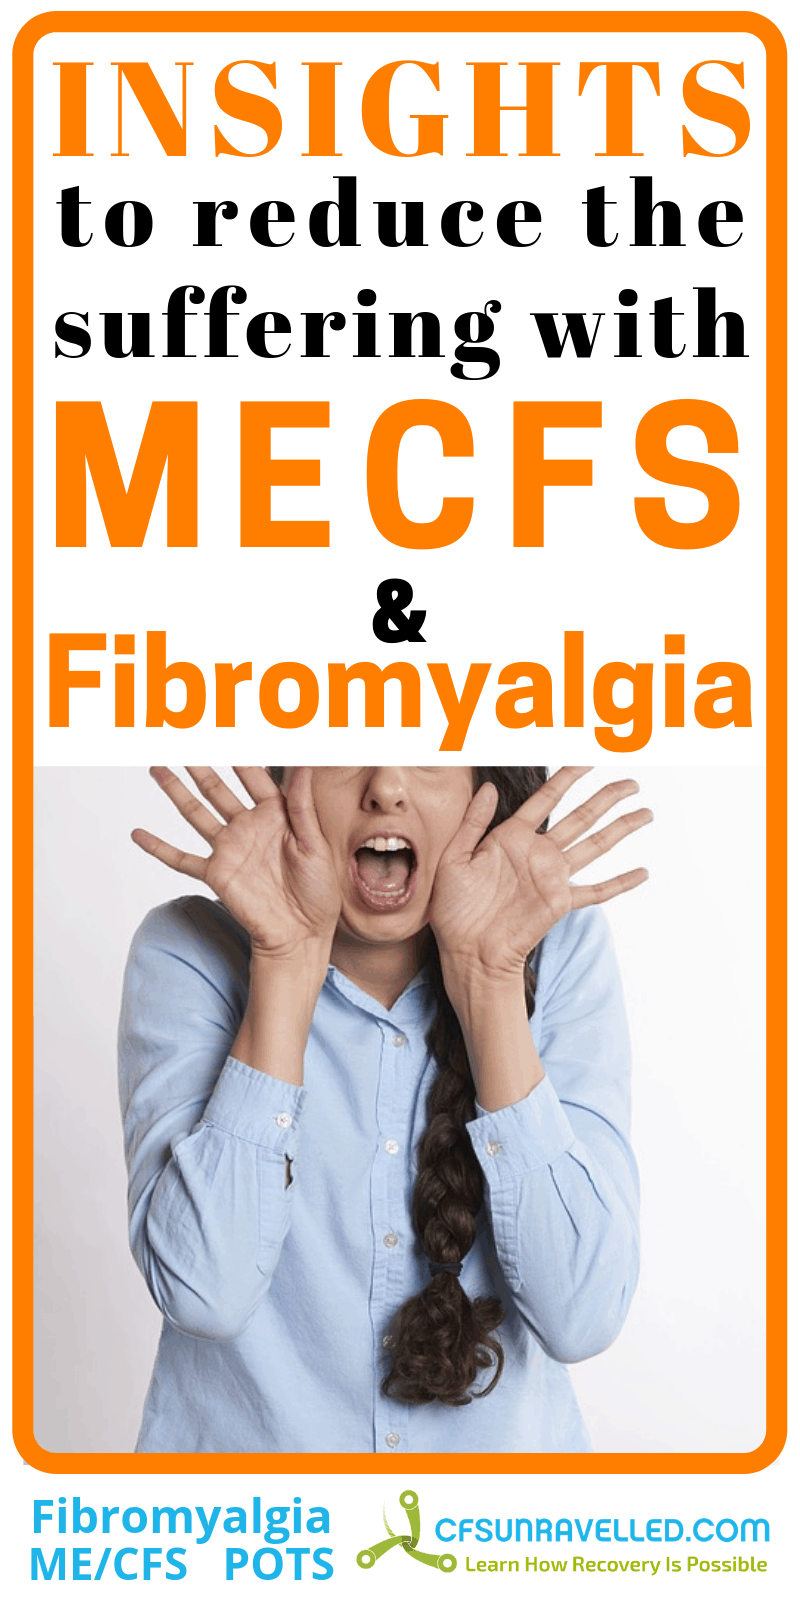 poster with woman yelling about fibromyalgia mecfs realisation